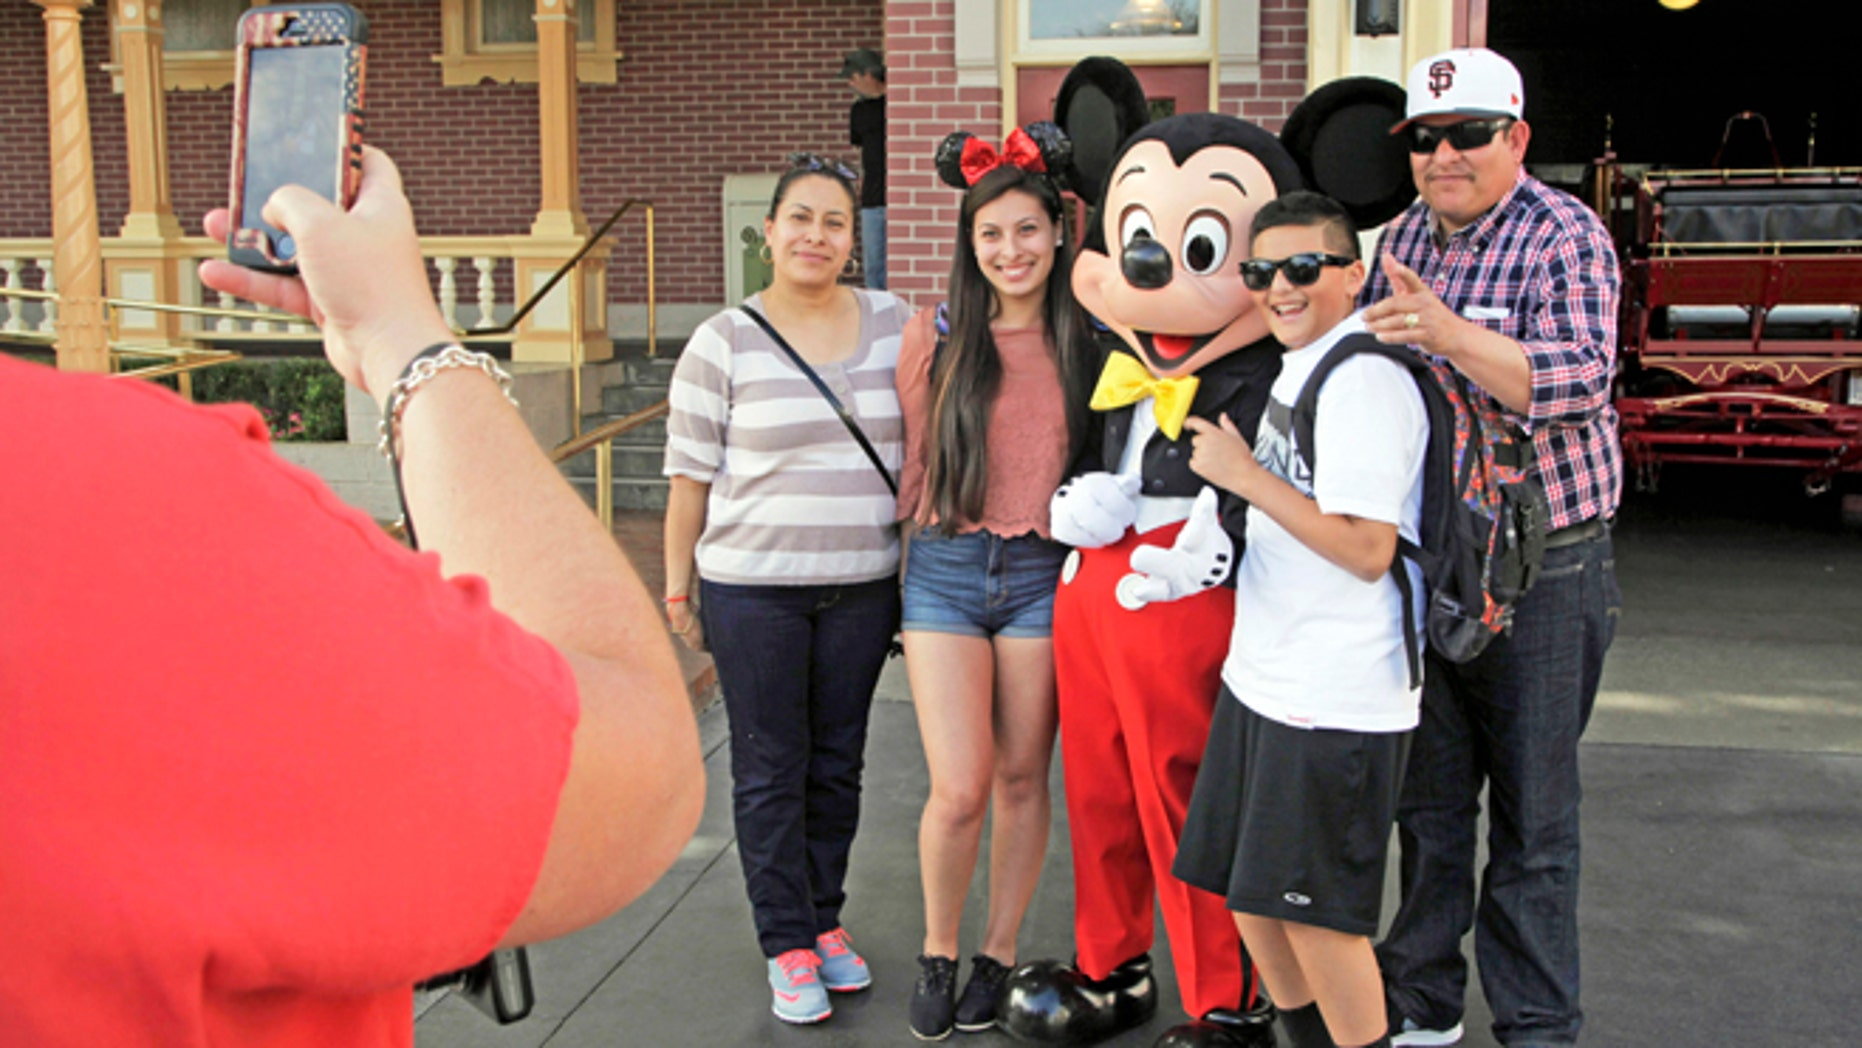 Visitors pose with Mickey Mouse at Disneyland in Anaheim, Calif.